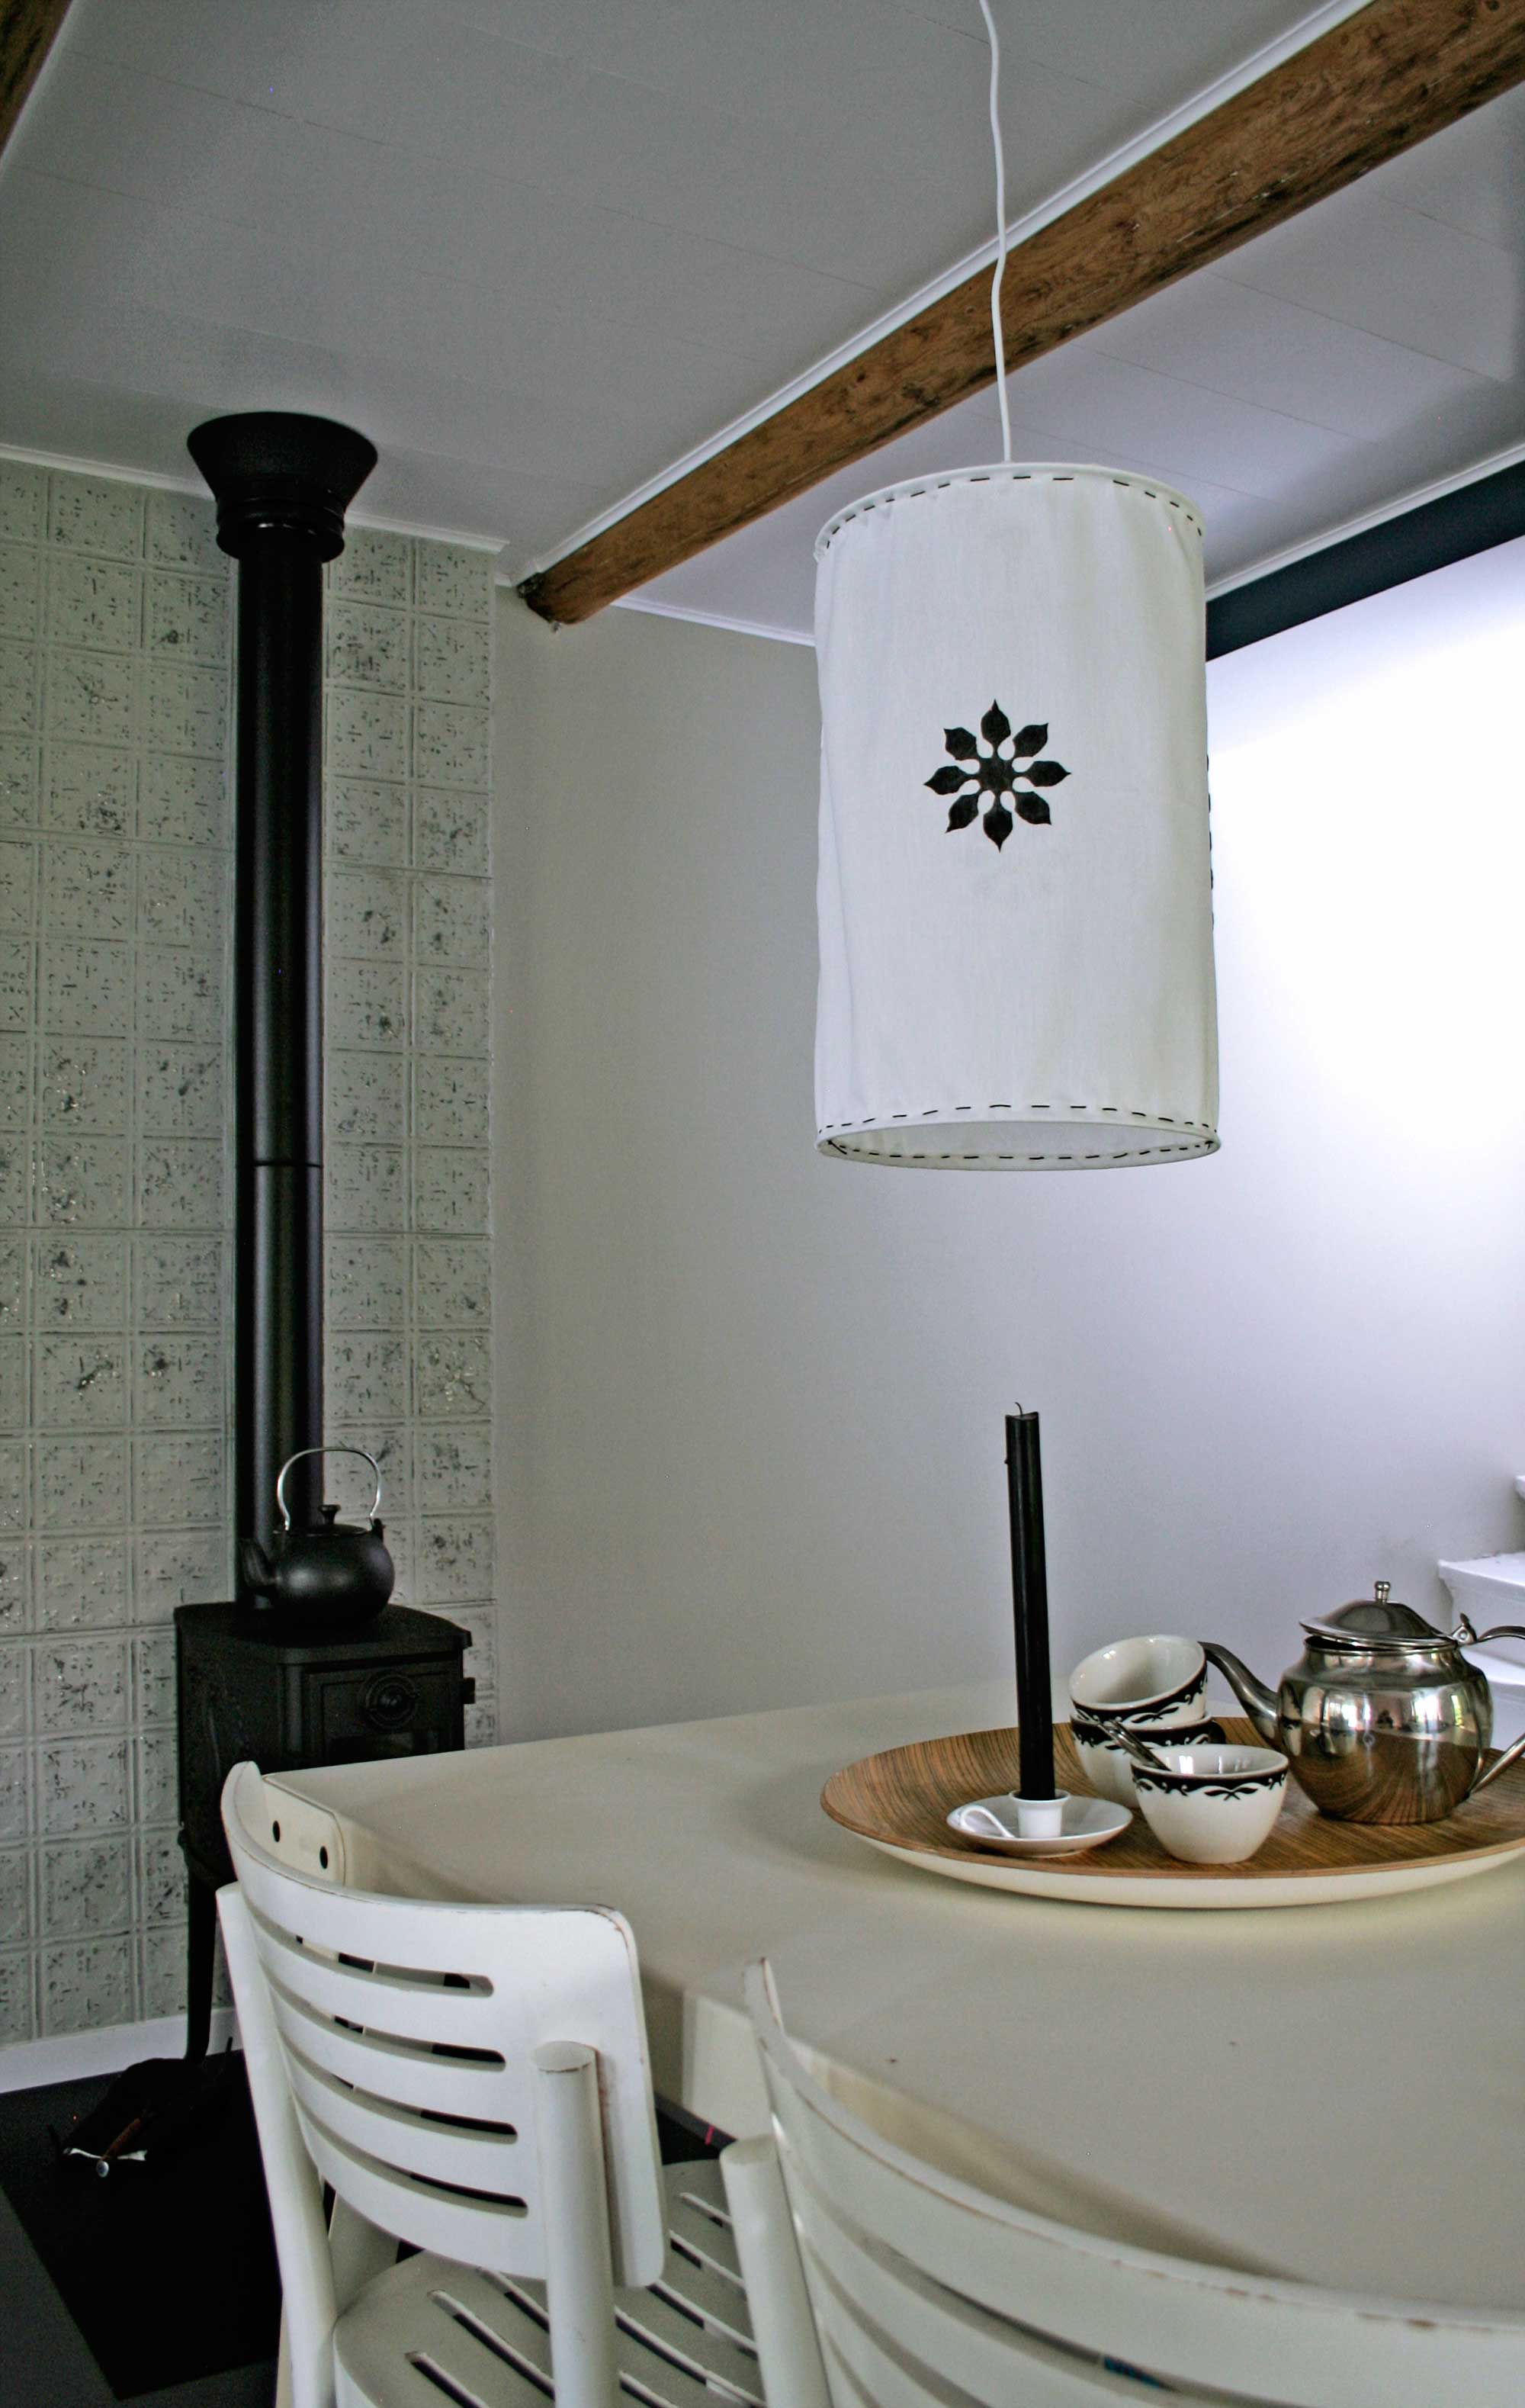 Project Fairytale: DIY Fabric Lampshade